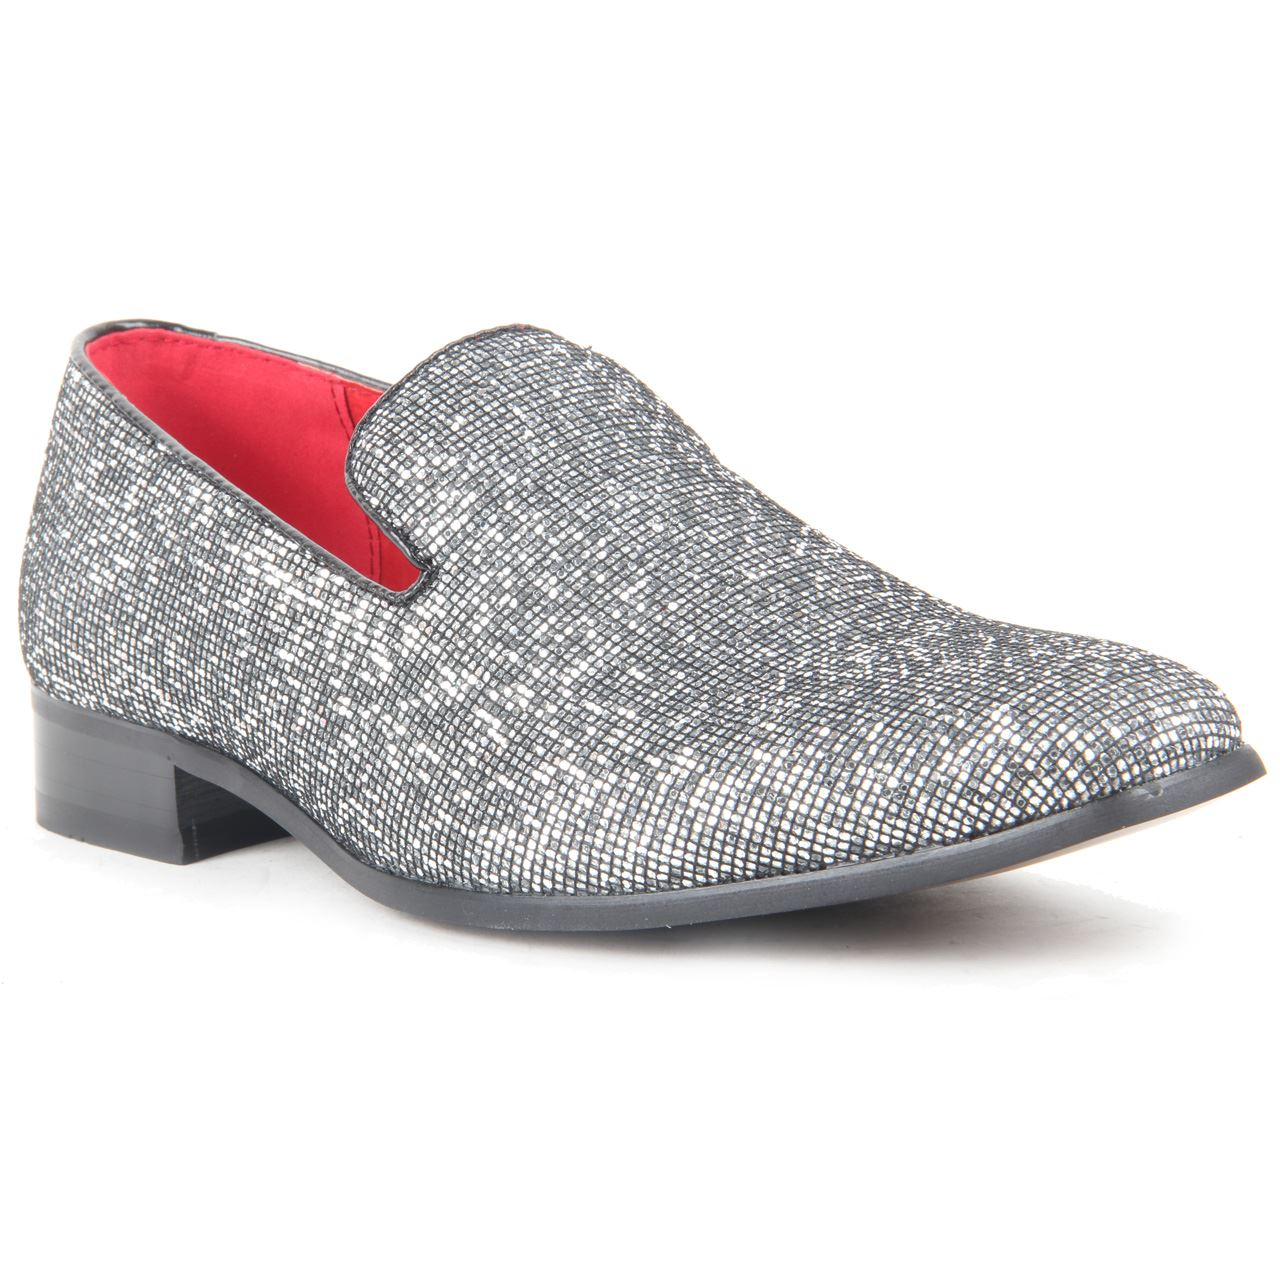 Womens fashion shoes online uk 57